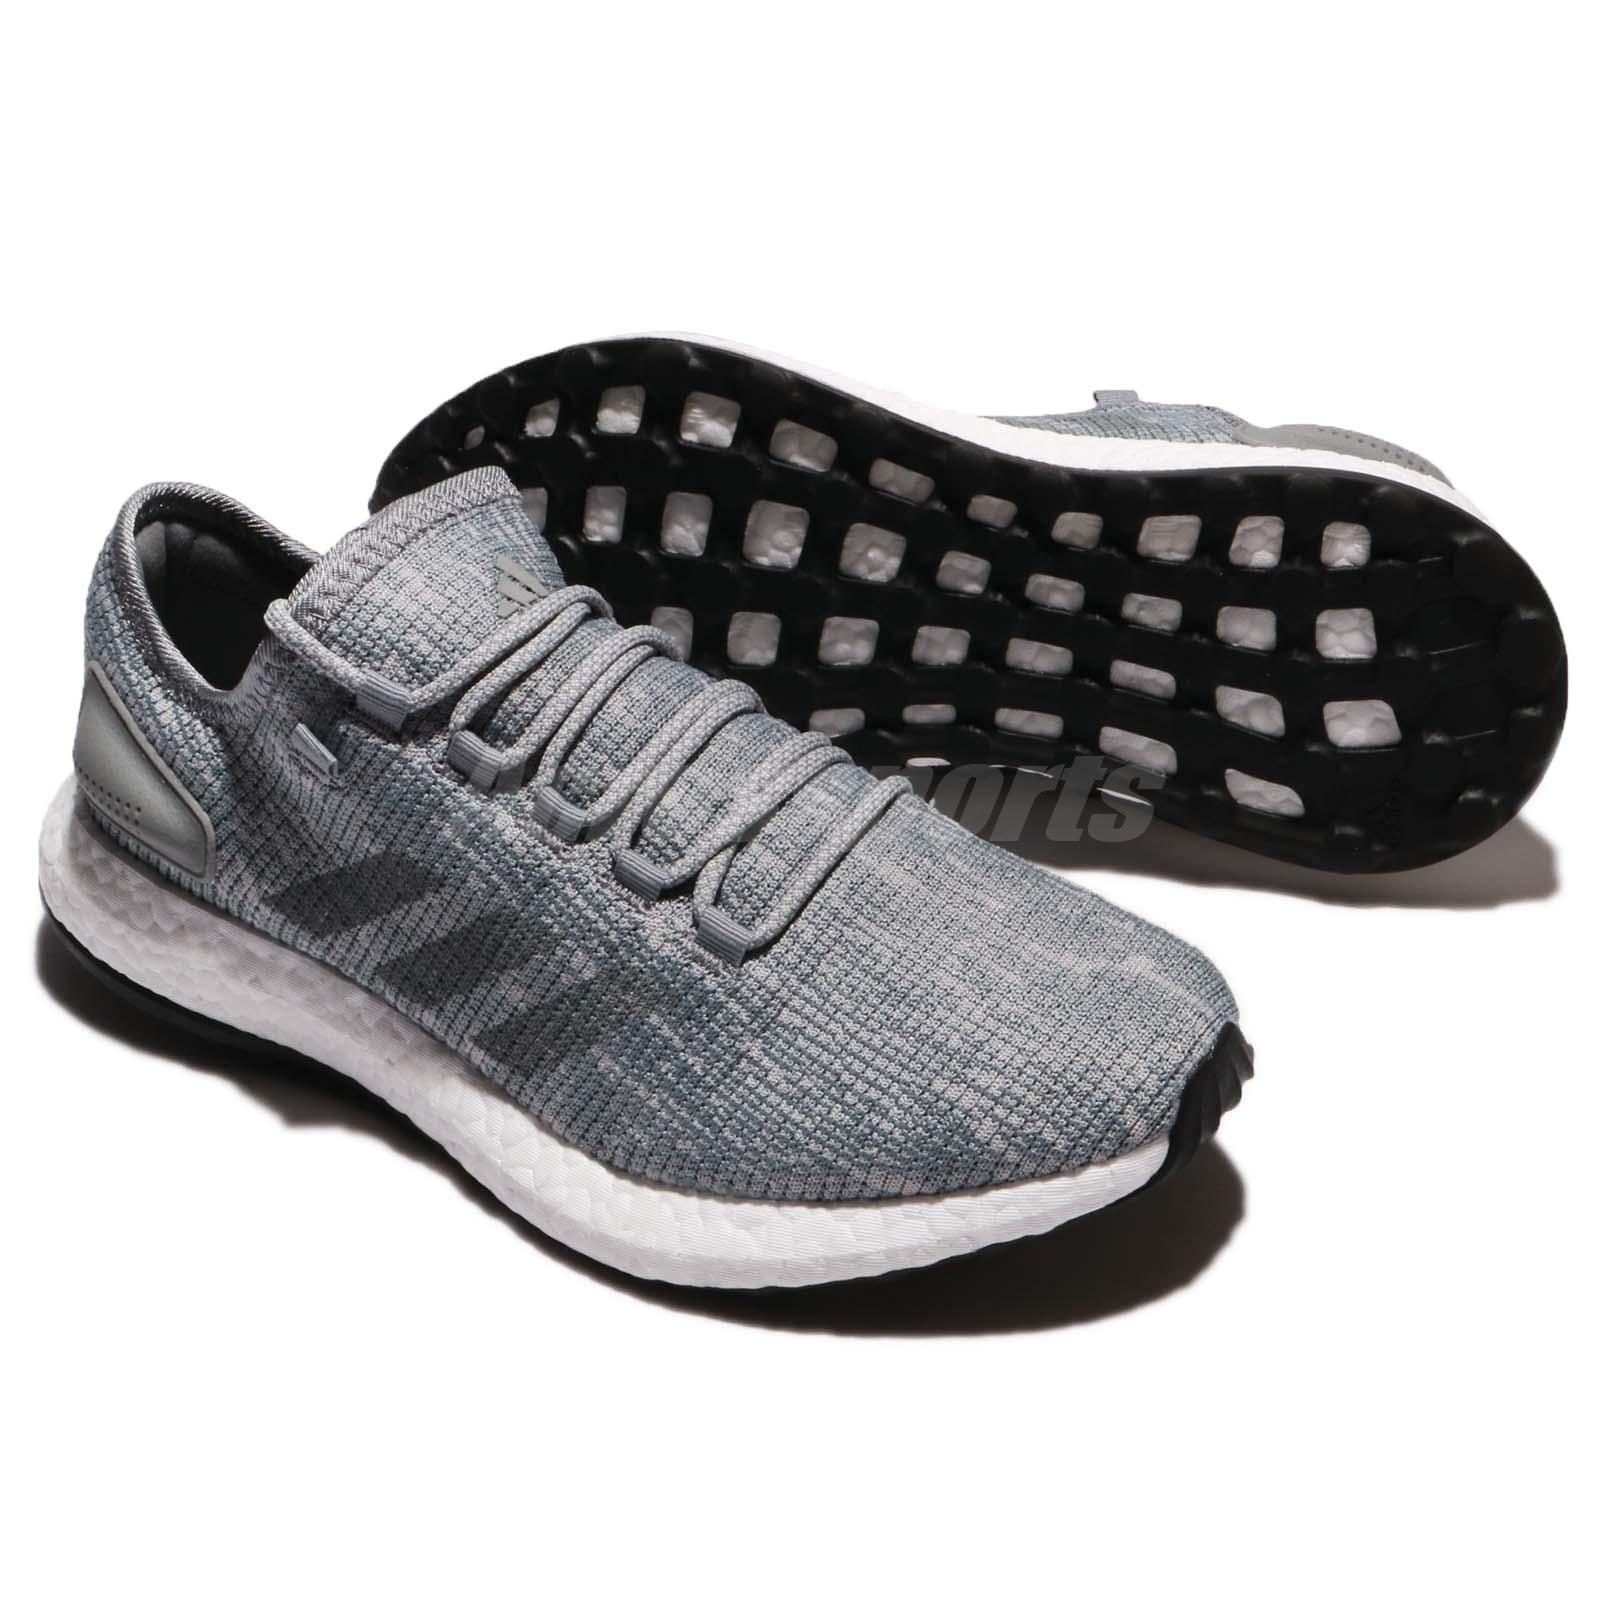 968f9ee0c4aa2 adidas PureBOOST Grey White Men Running Shoes Sneakers Trainers ...